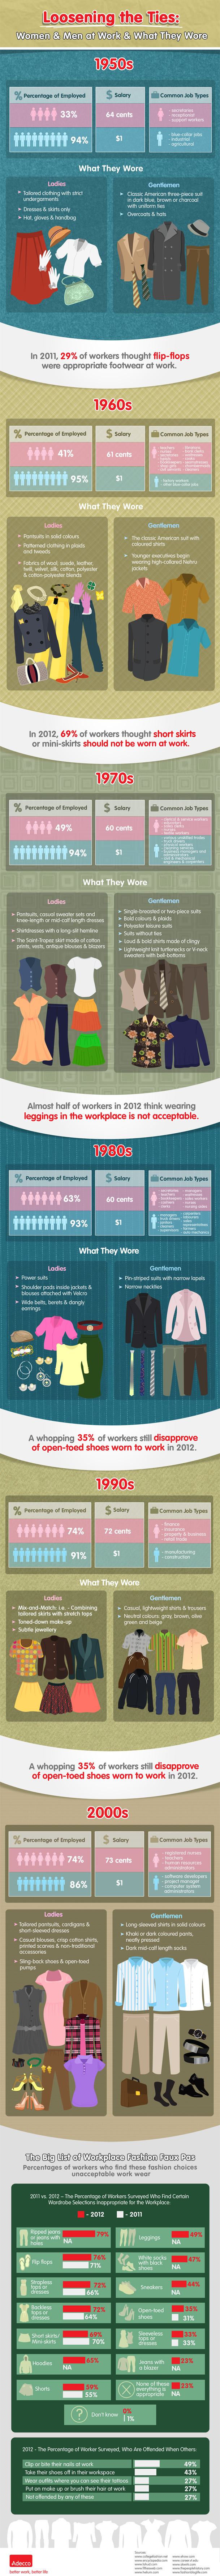 loosening-the-ties-workplace-attire-through-the-decades-infographic_5086aa573c53e